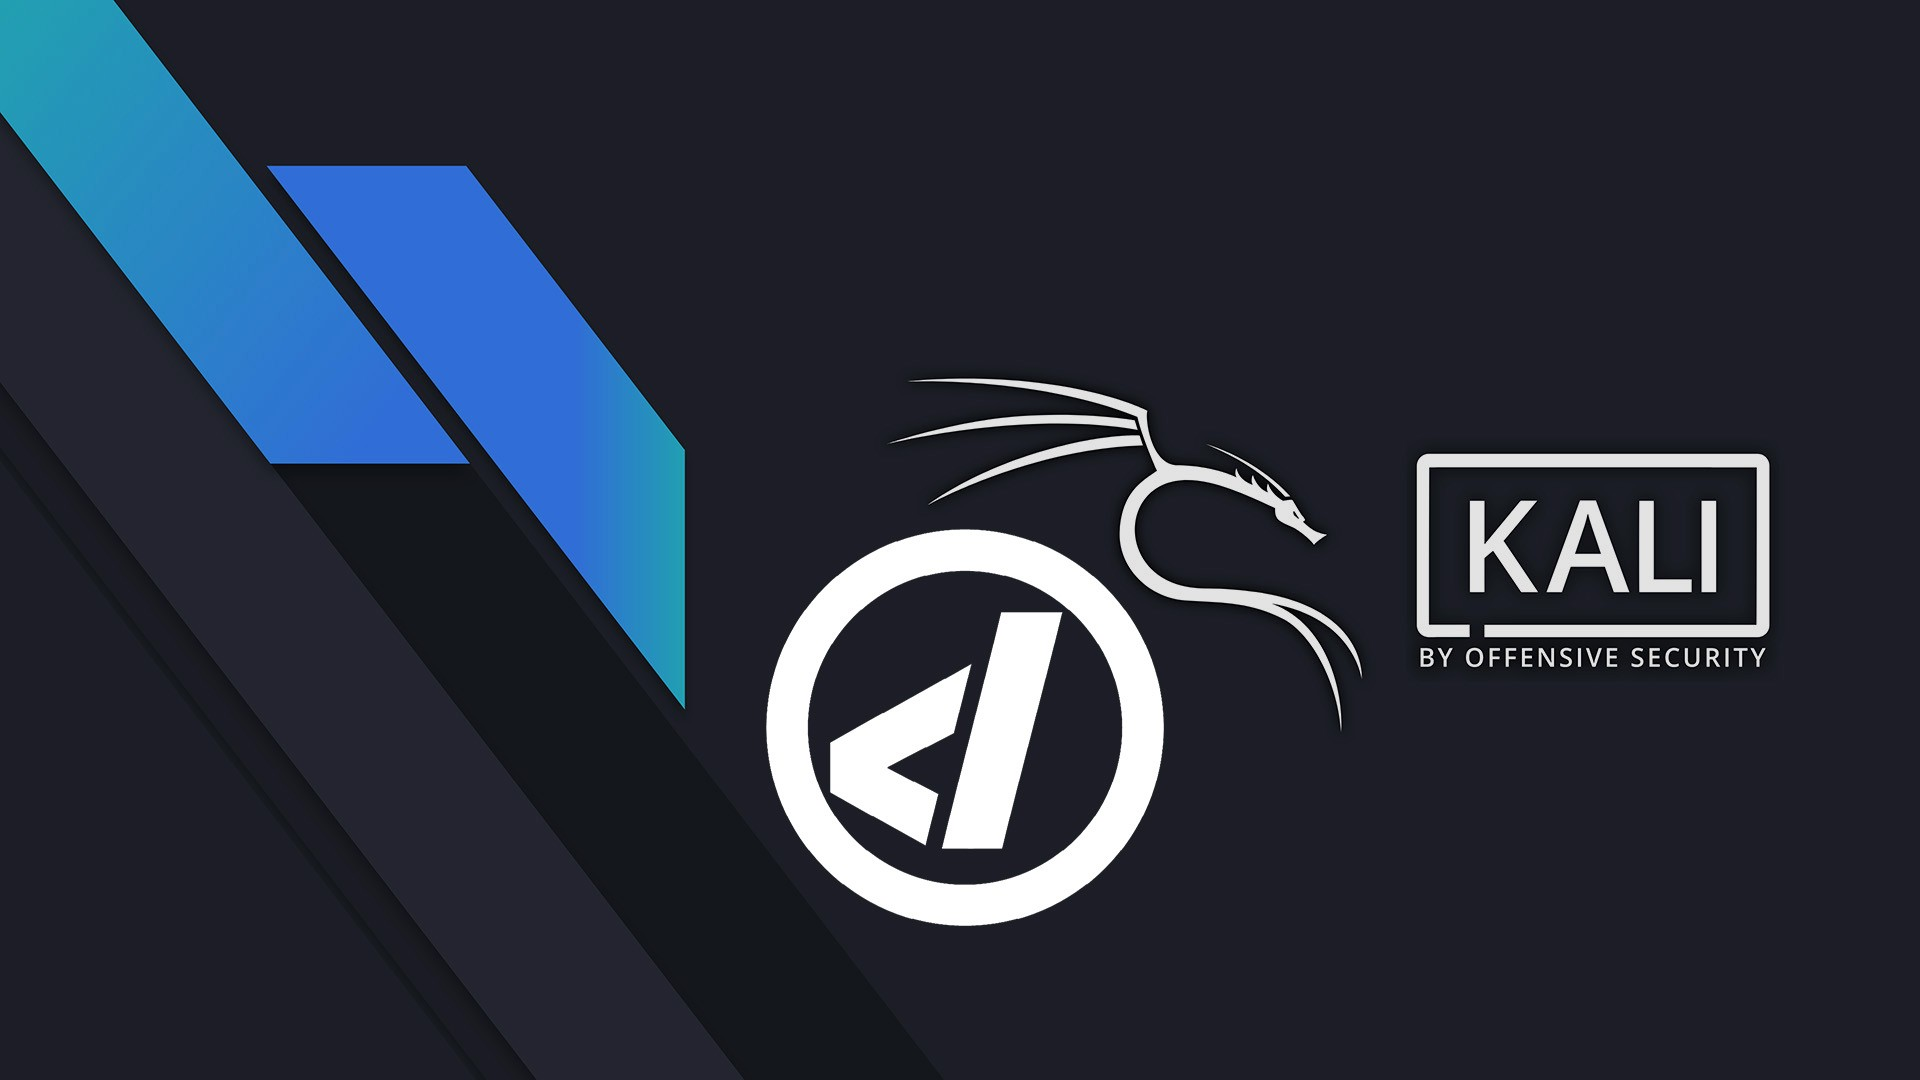 damisoft security wallpaper hd kali linux logo